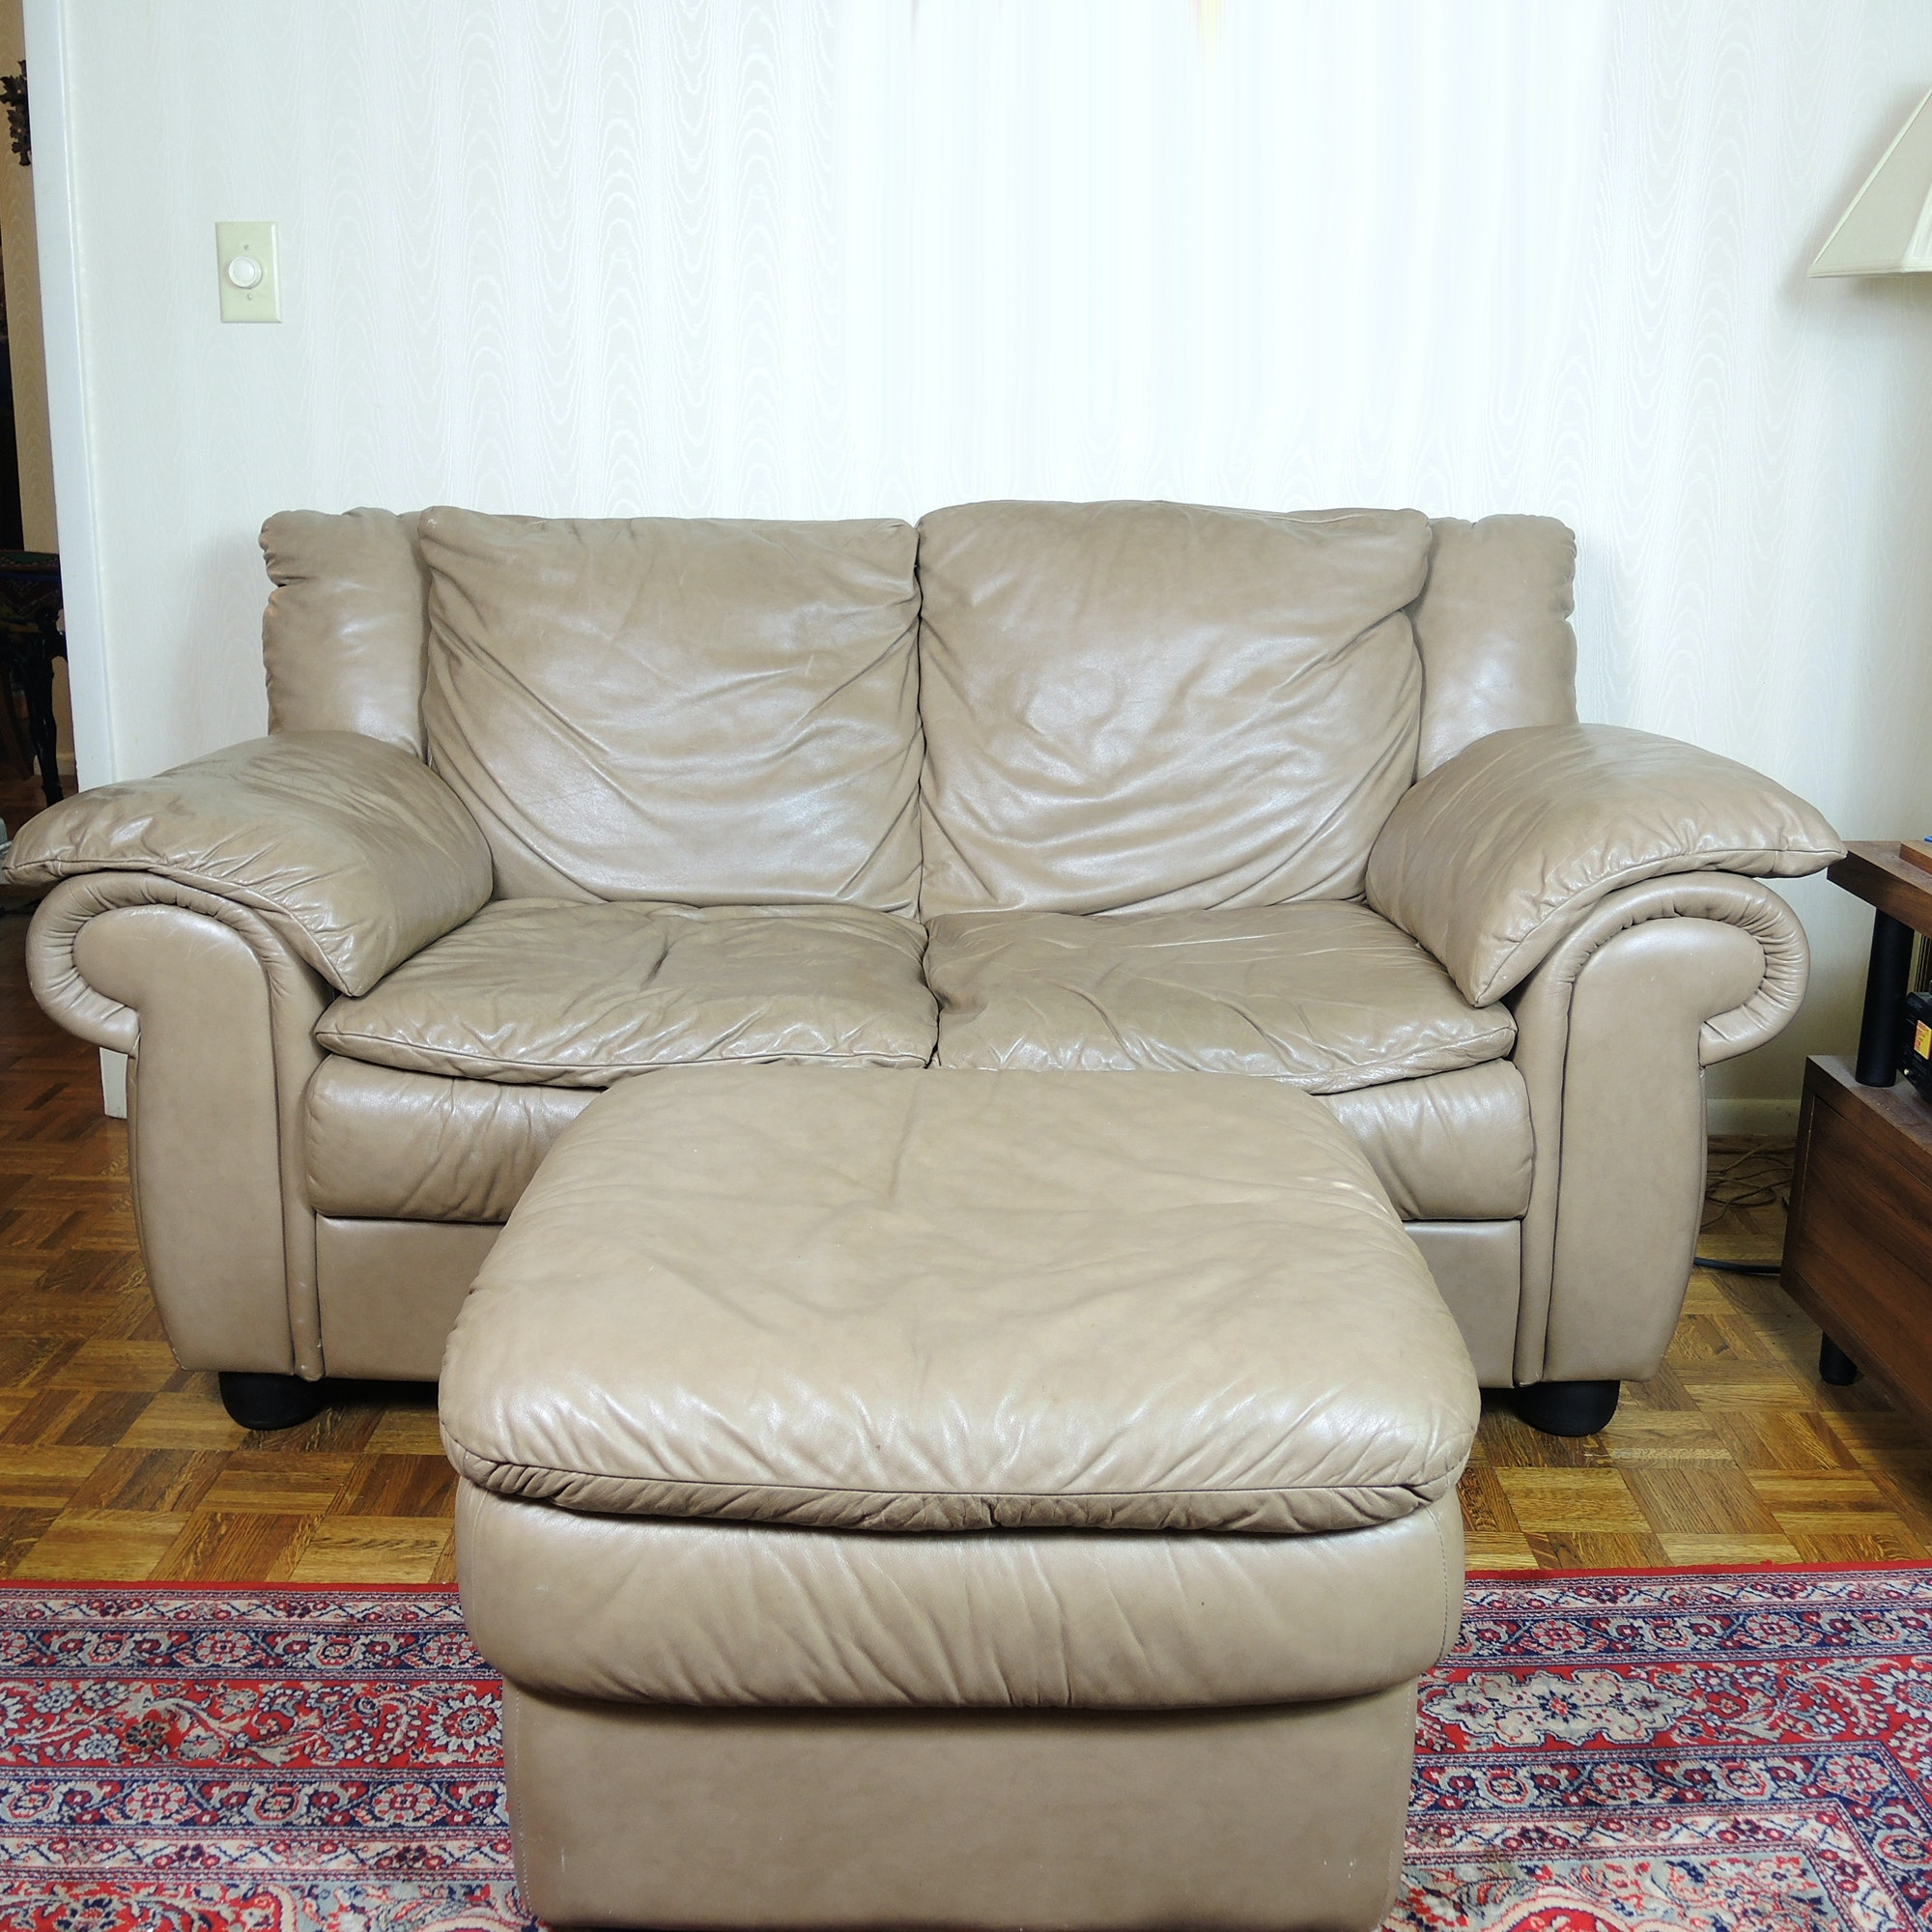 Genuine Leather Sofa and Matching Ottoman